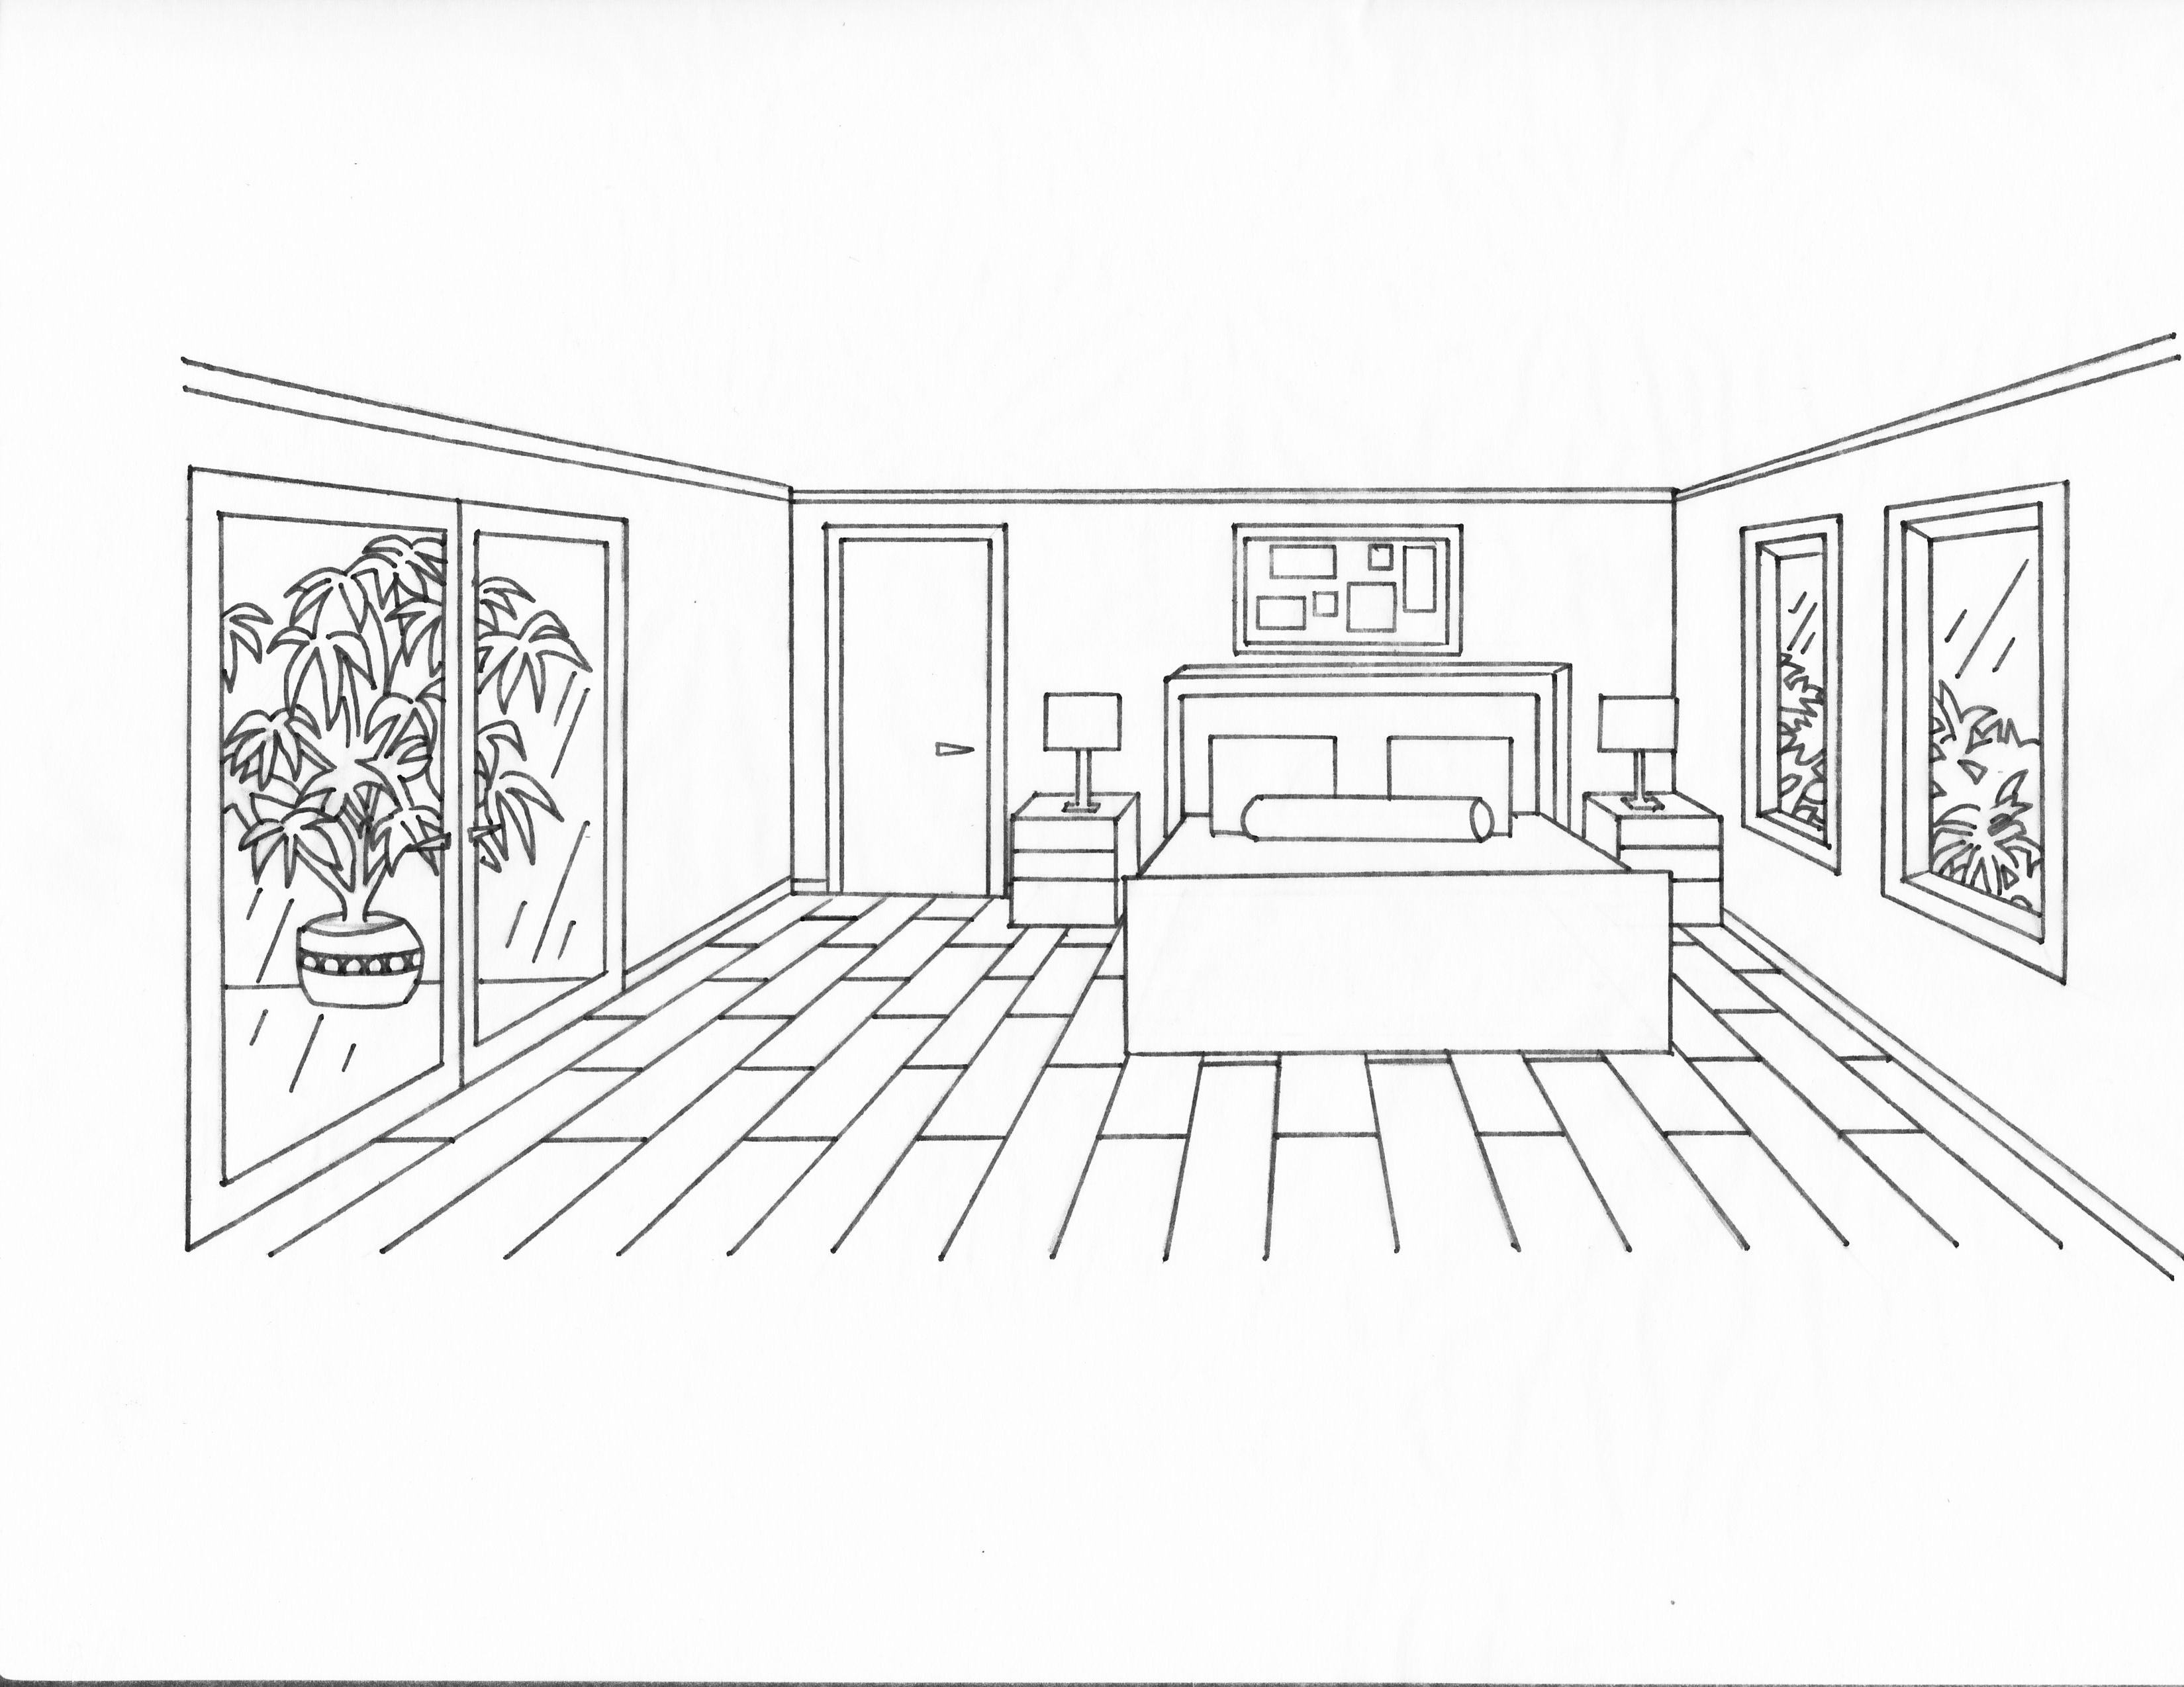 Bedroom drawing perspective - 1 Point Perspective